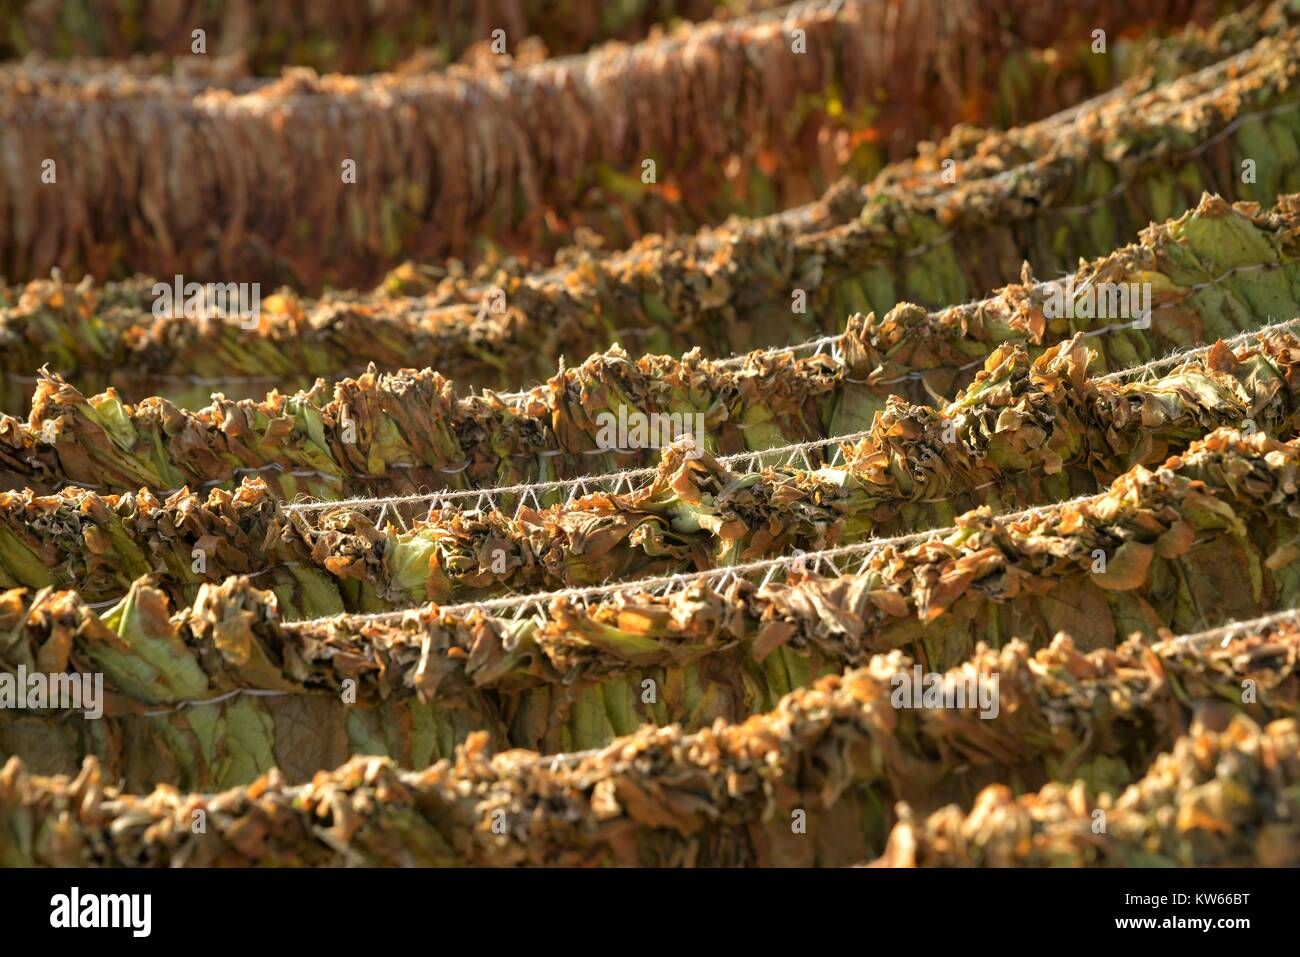 Tobacco leaves drying in the shed. shallow dof, image of a - Stock Image